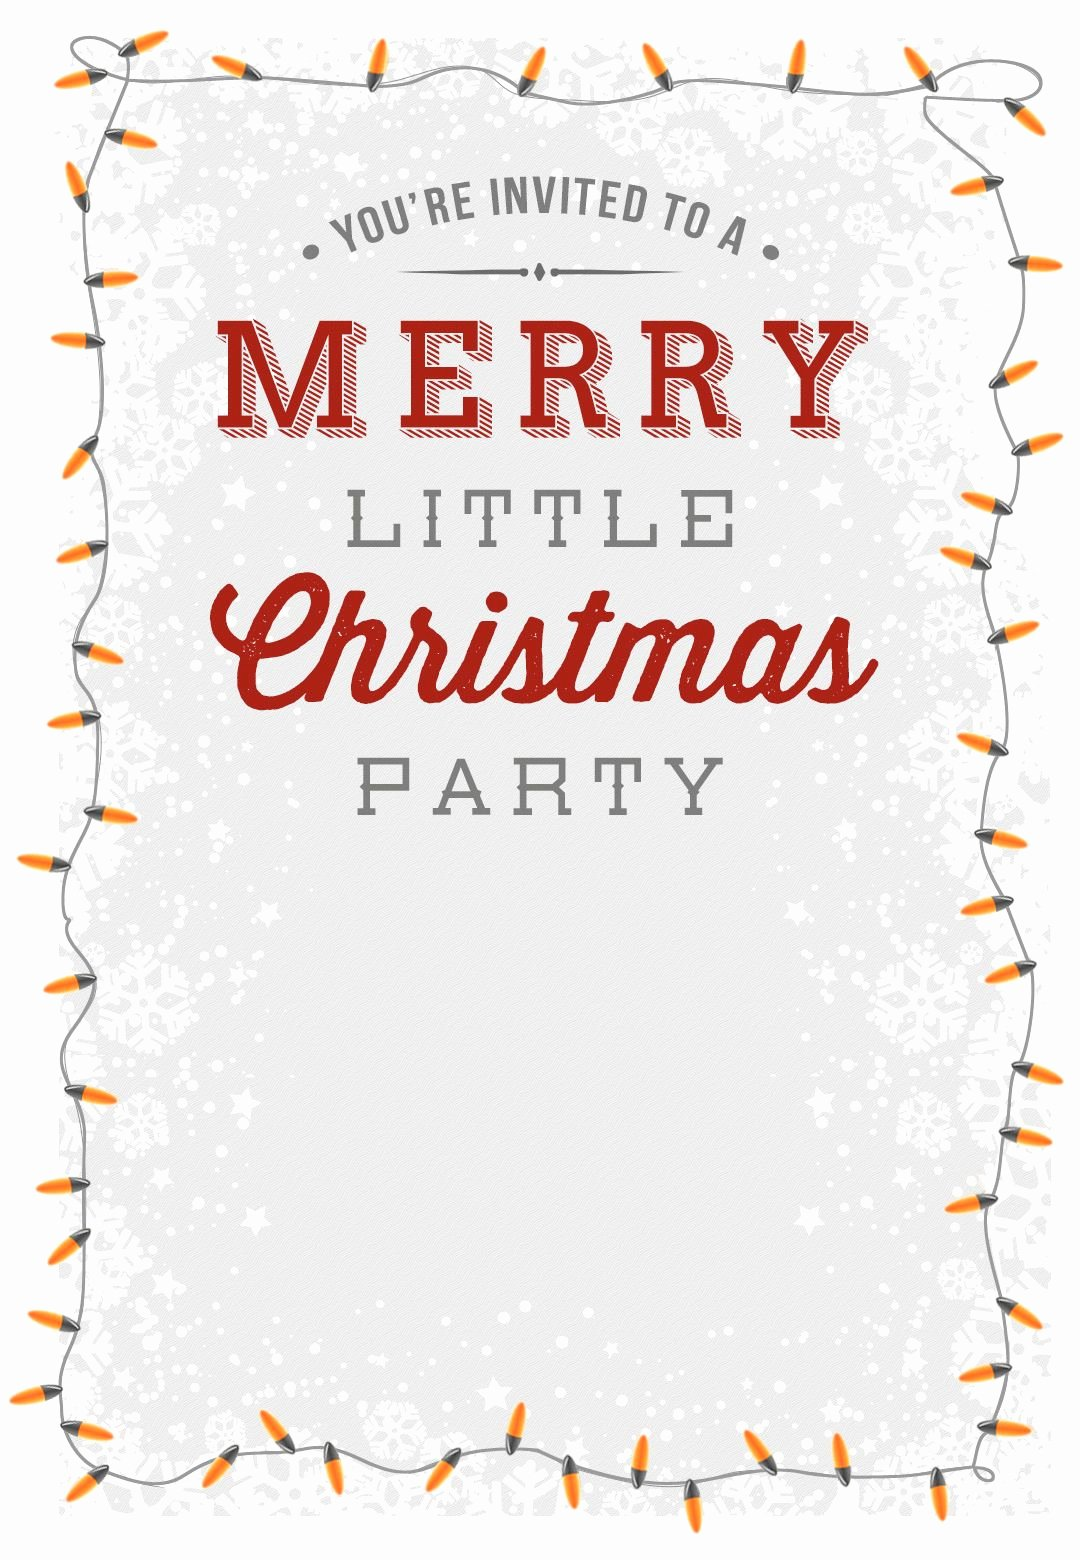 Free Holiday Party Invitation Template Best Of A Merry Little Party Free Printable Christmas Invitation